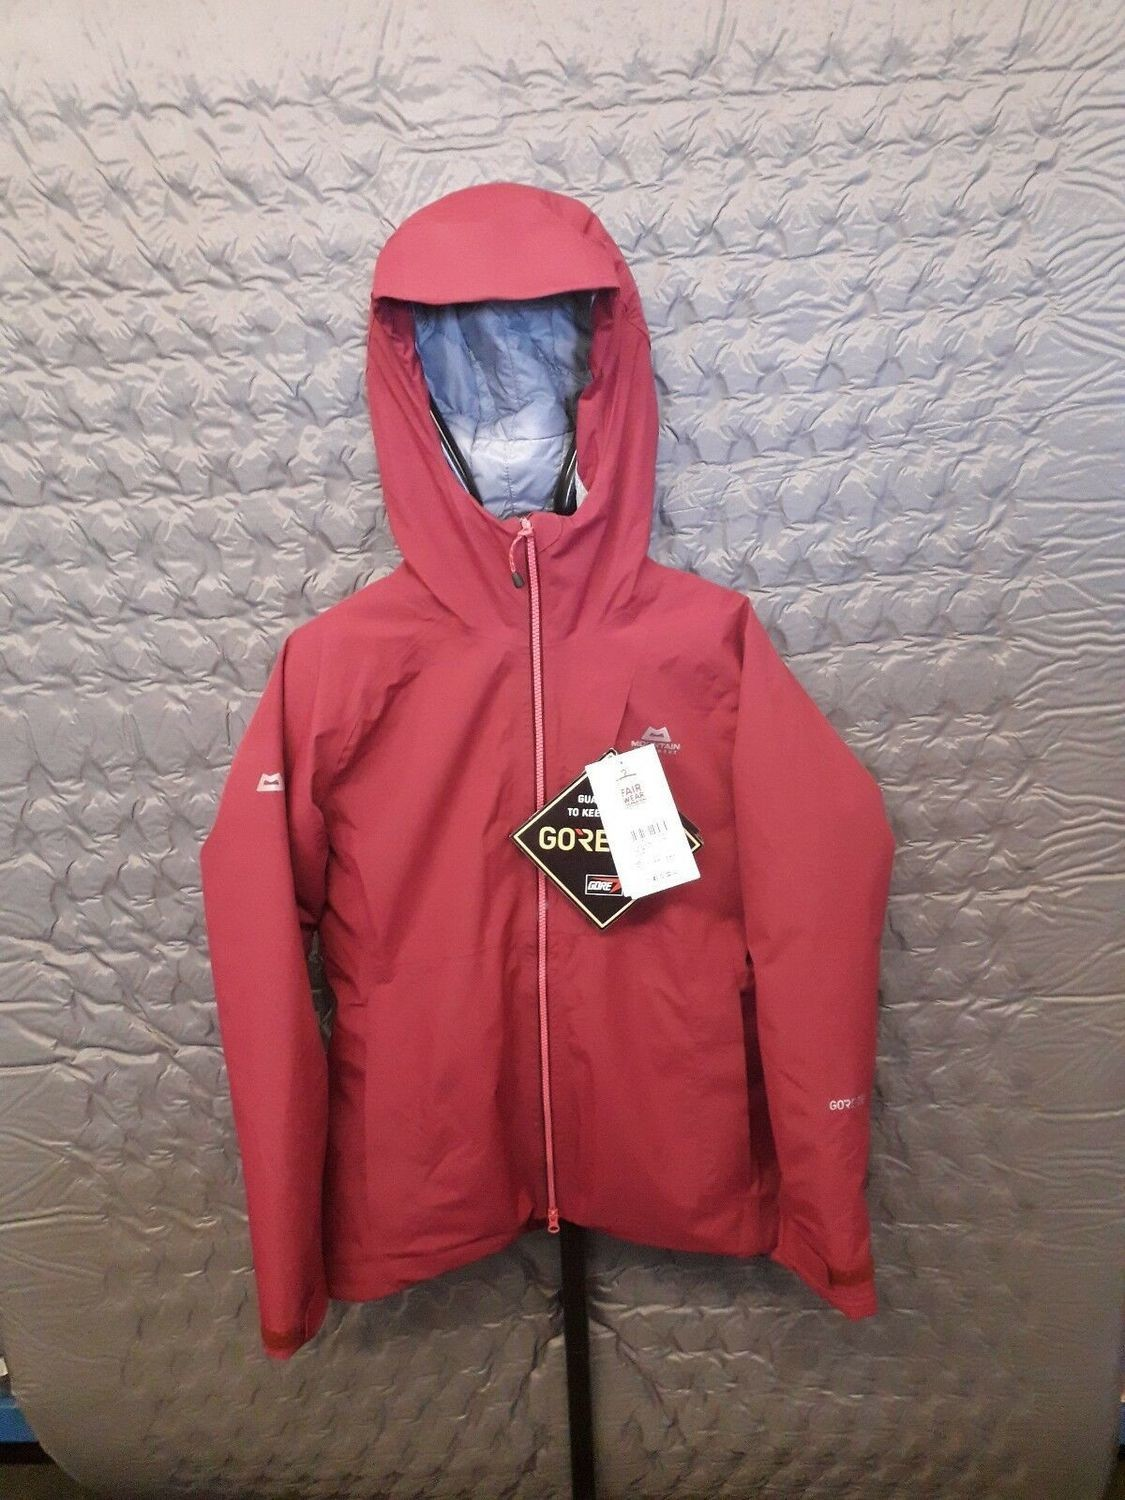 MOUNTAIN EQUIPMENT ALTAI GORETEX INSULATED JACKET CRANBERRY 12